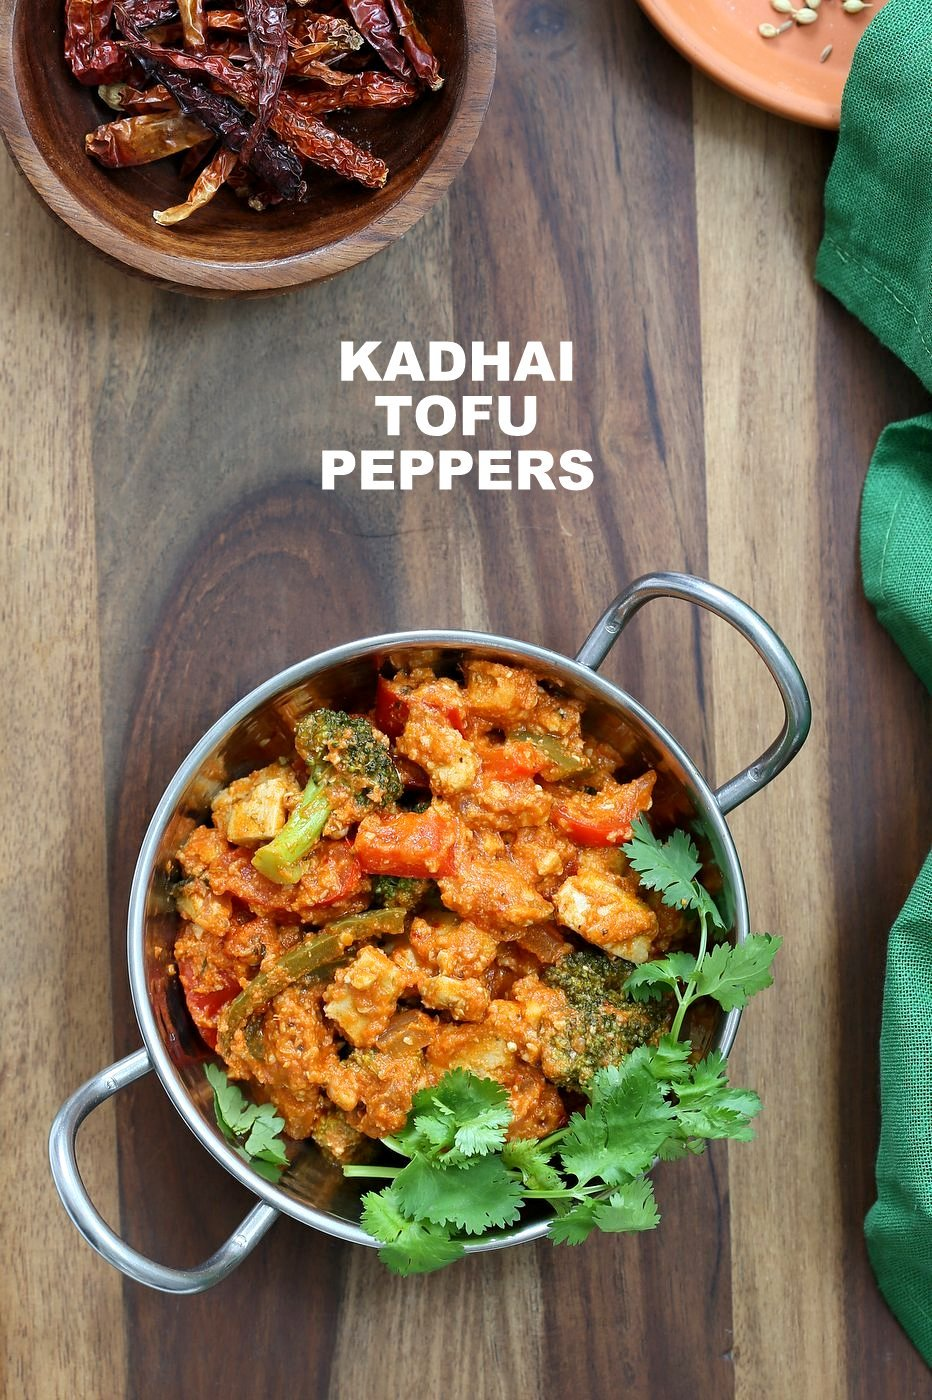 Kadai Paneer Tofu & Peppers. Kadhai Tofu in spiced tomato sauce. Shimla Mirch/ Capsicum, Broccoli and Crisped Hemp Tofu in an easy blender tomato almond sauce makes a great entree for Diwali. Vegan Gluten-free Soy-free Cashew-free Recipe. | VeganRicha.com